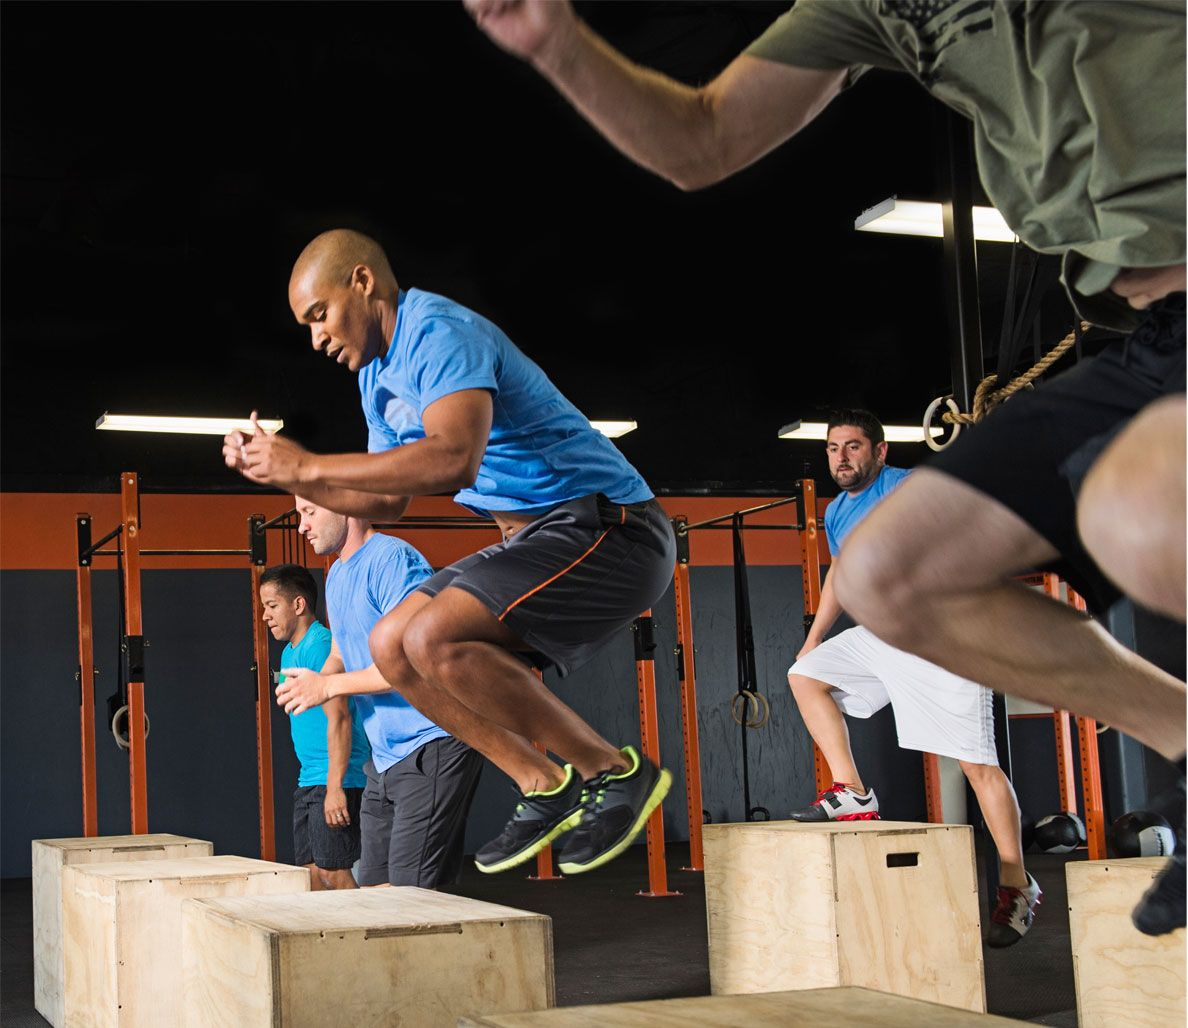 Are Plyometrics Good For Building Muscle